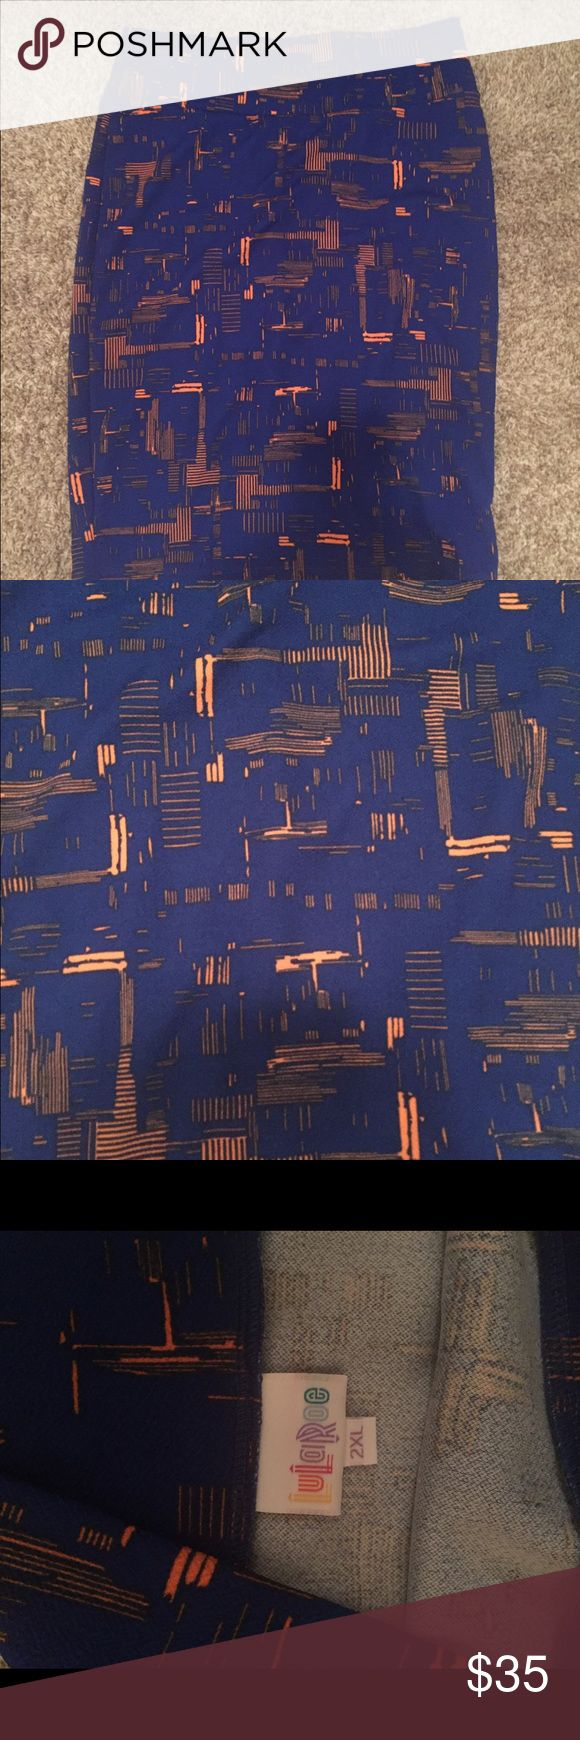 LuLaRoe Cassie skirt 2xl Blue and orangey skirt from lularoe.  Stretchy material Never worn, but no tag! LuLaRoe Skirts Pencil